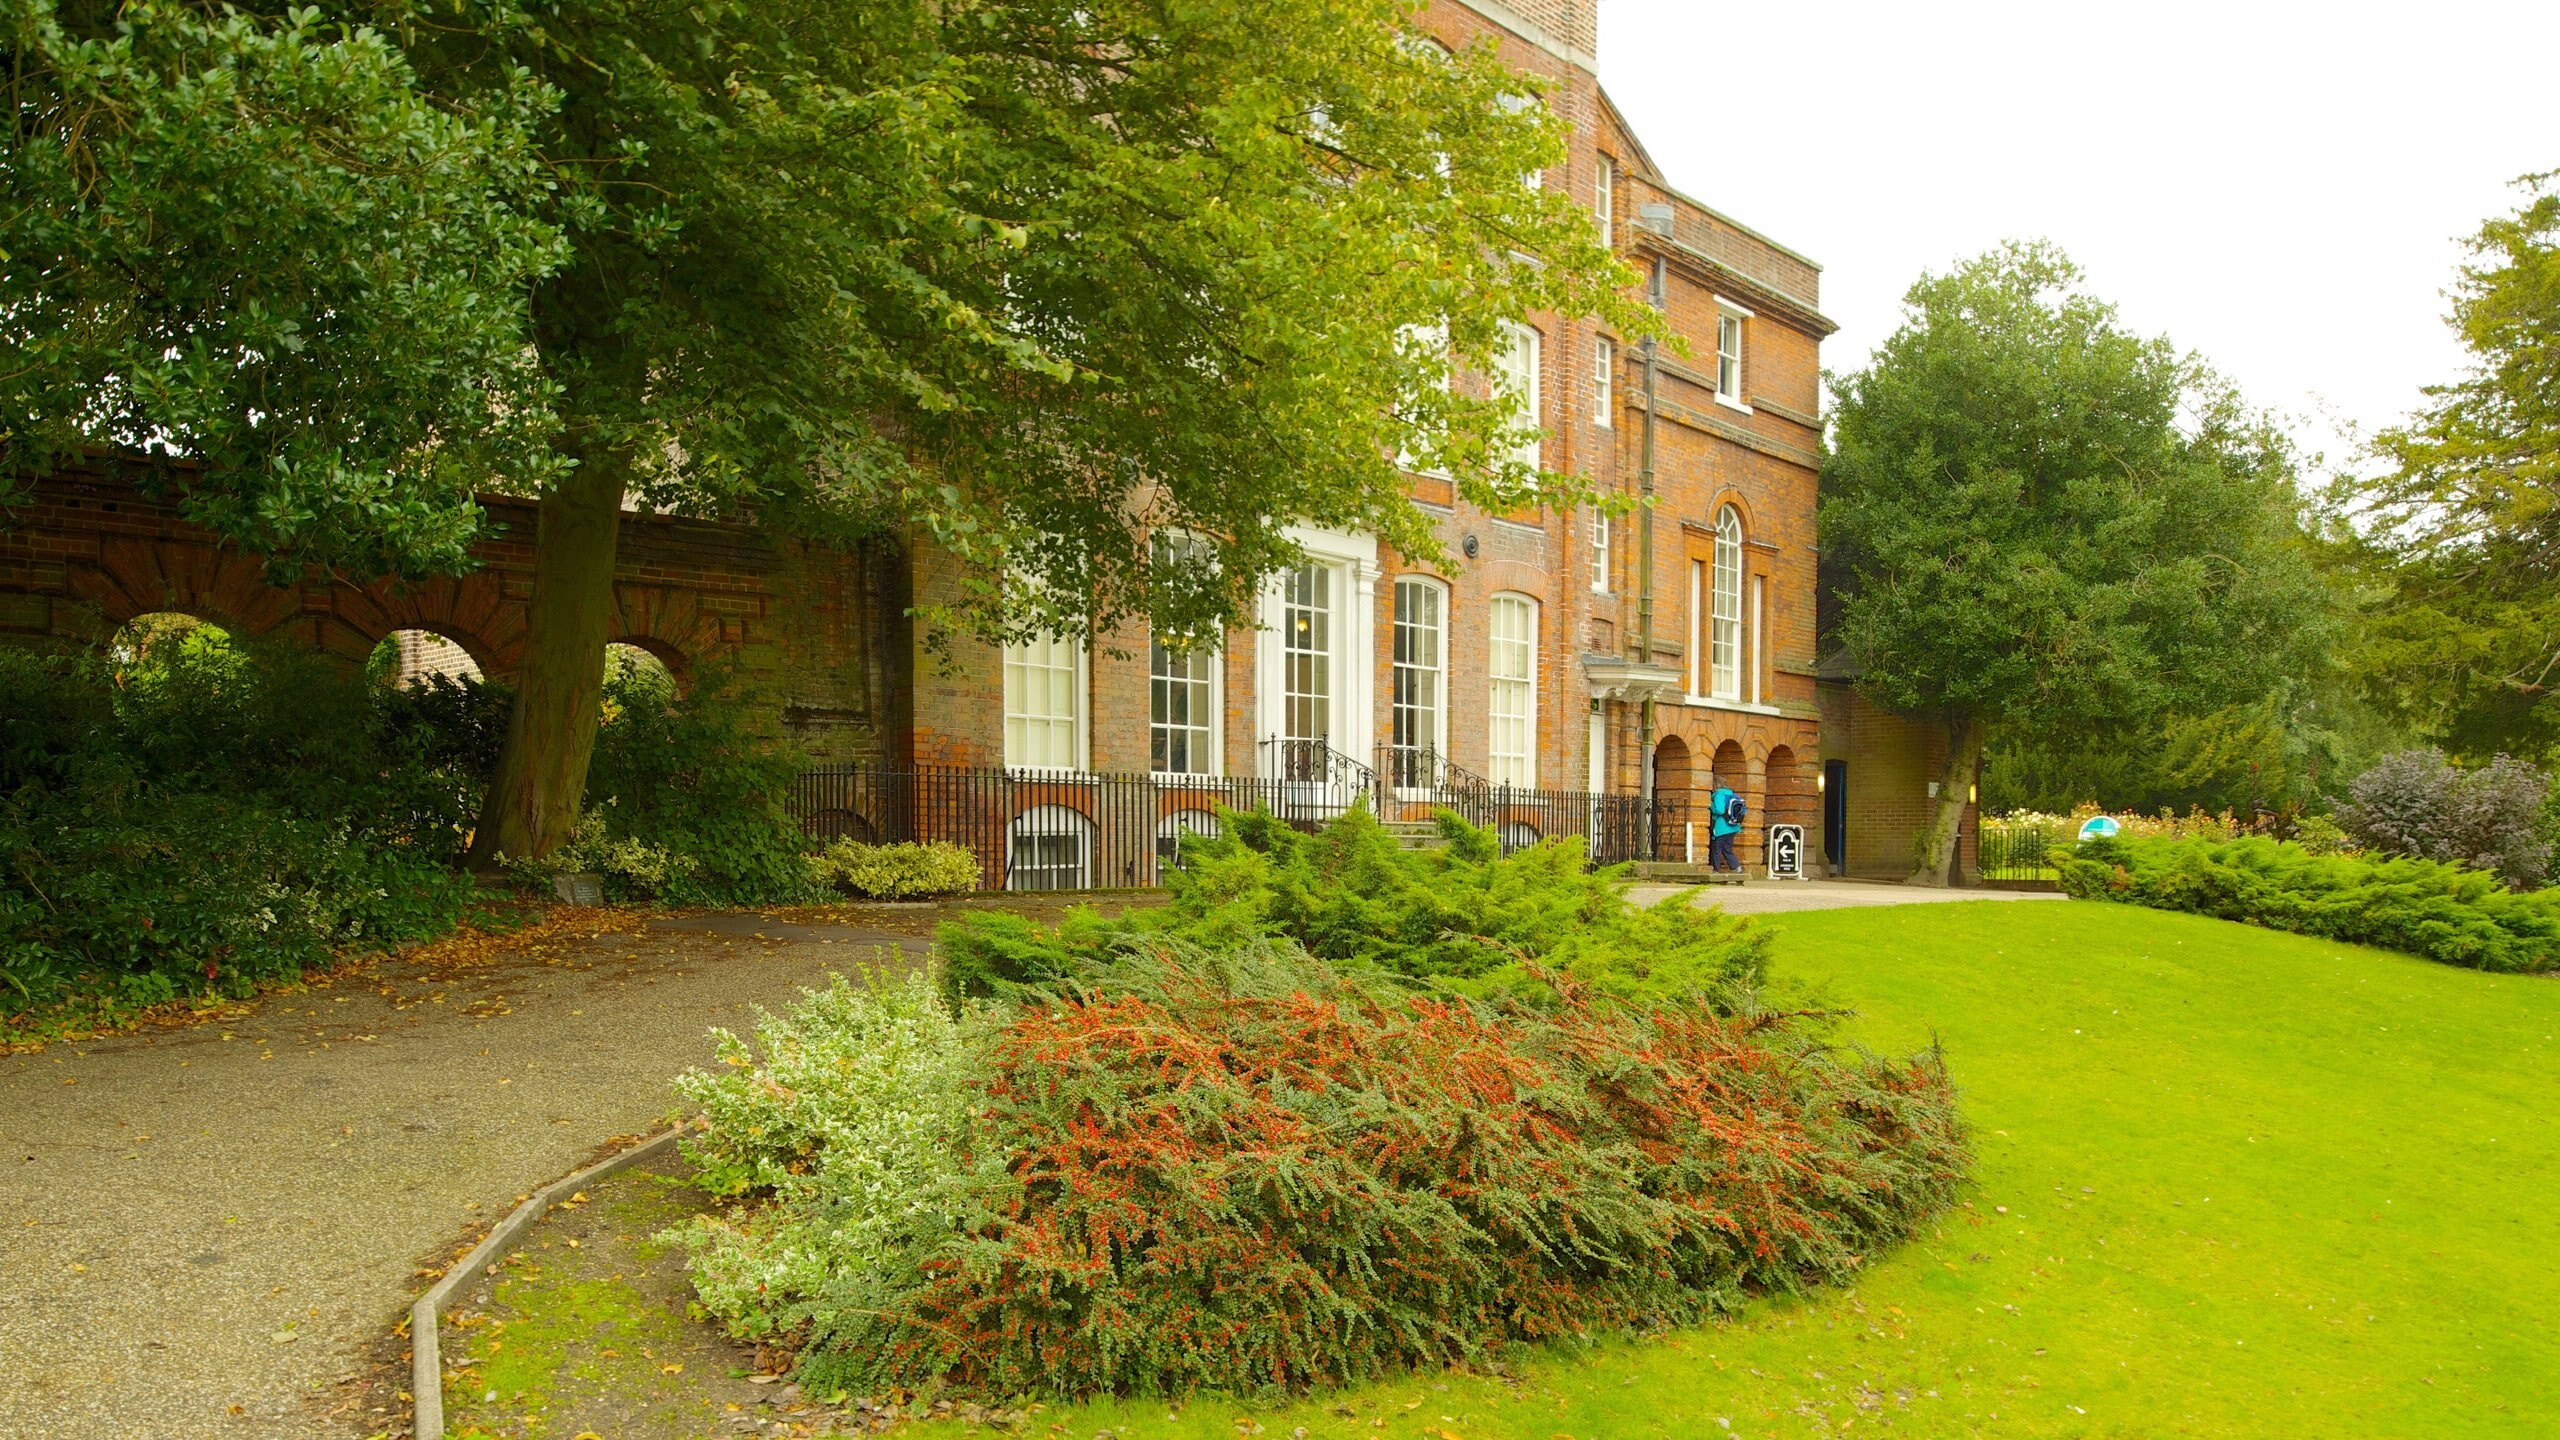 Hollytrees Museum, Colchester, England, United Kingdom